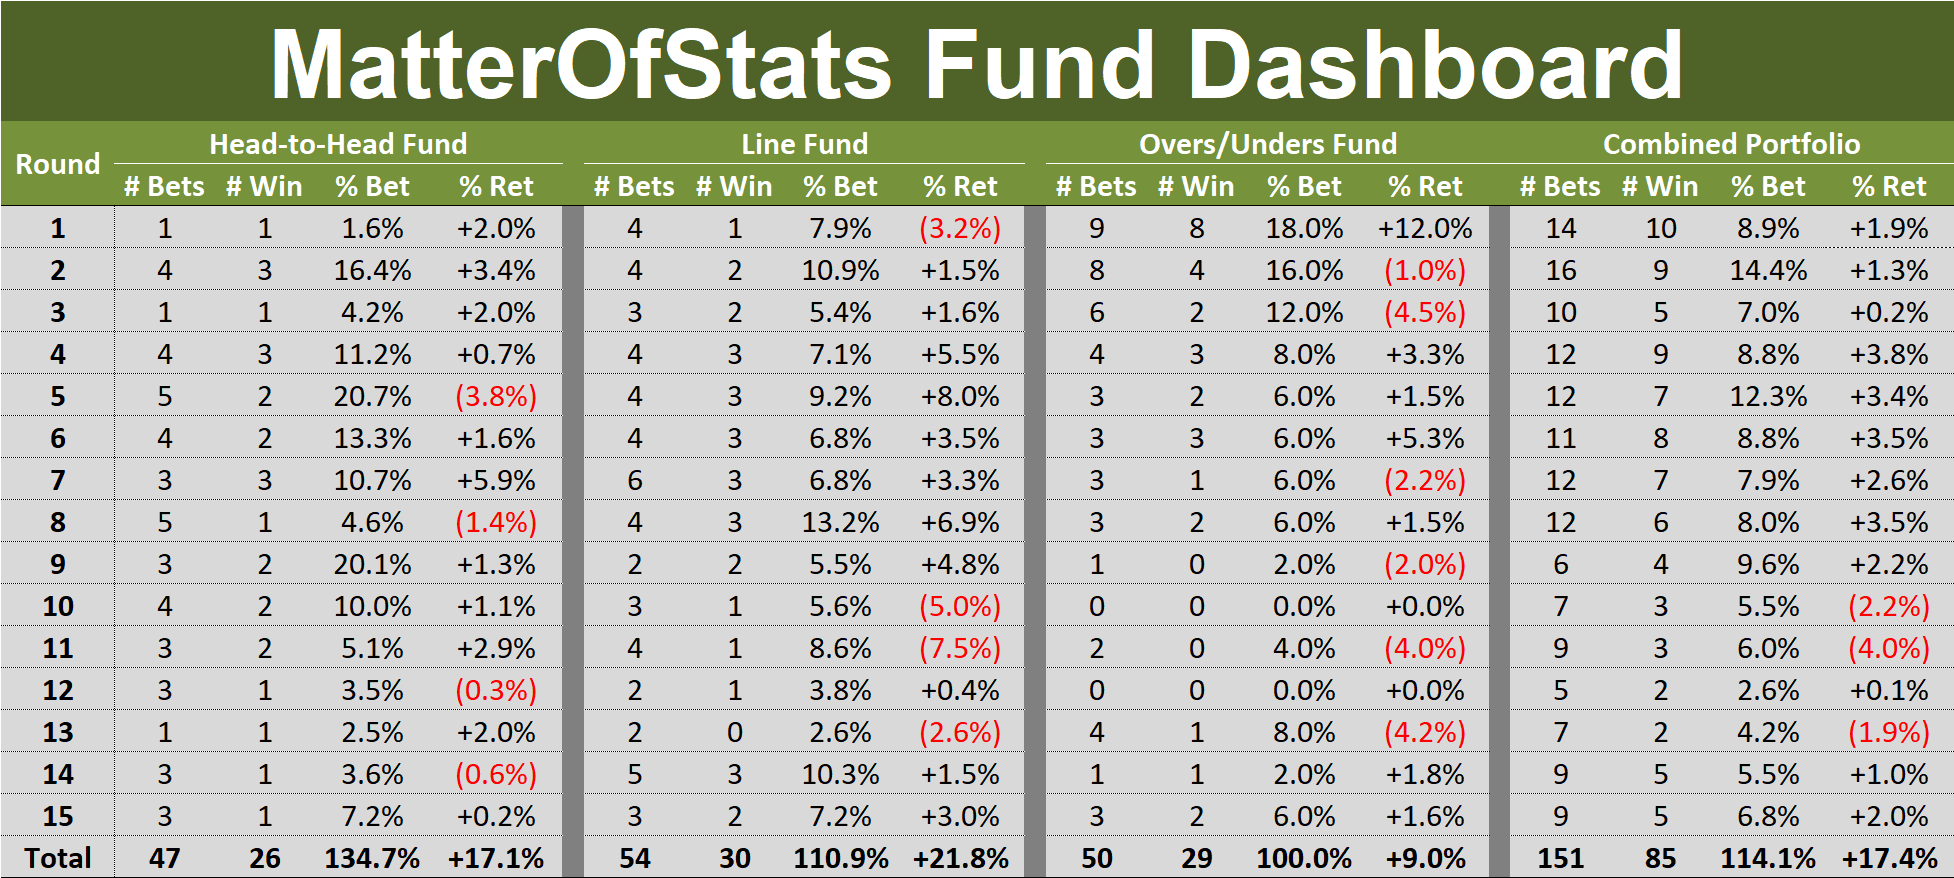 R15 - Fund Dashboard.png